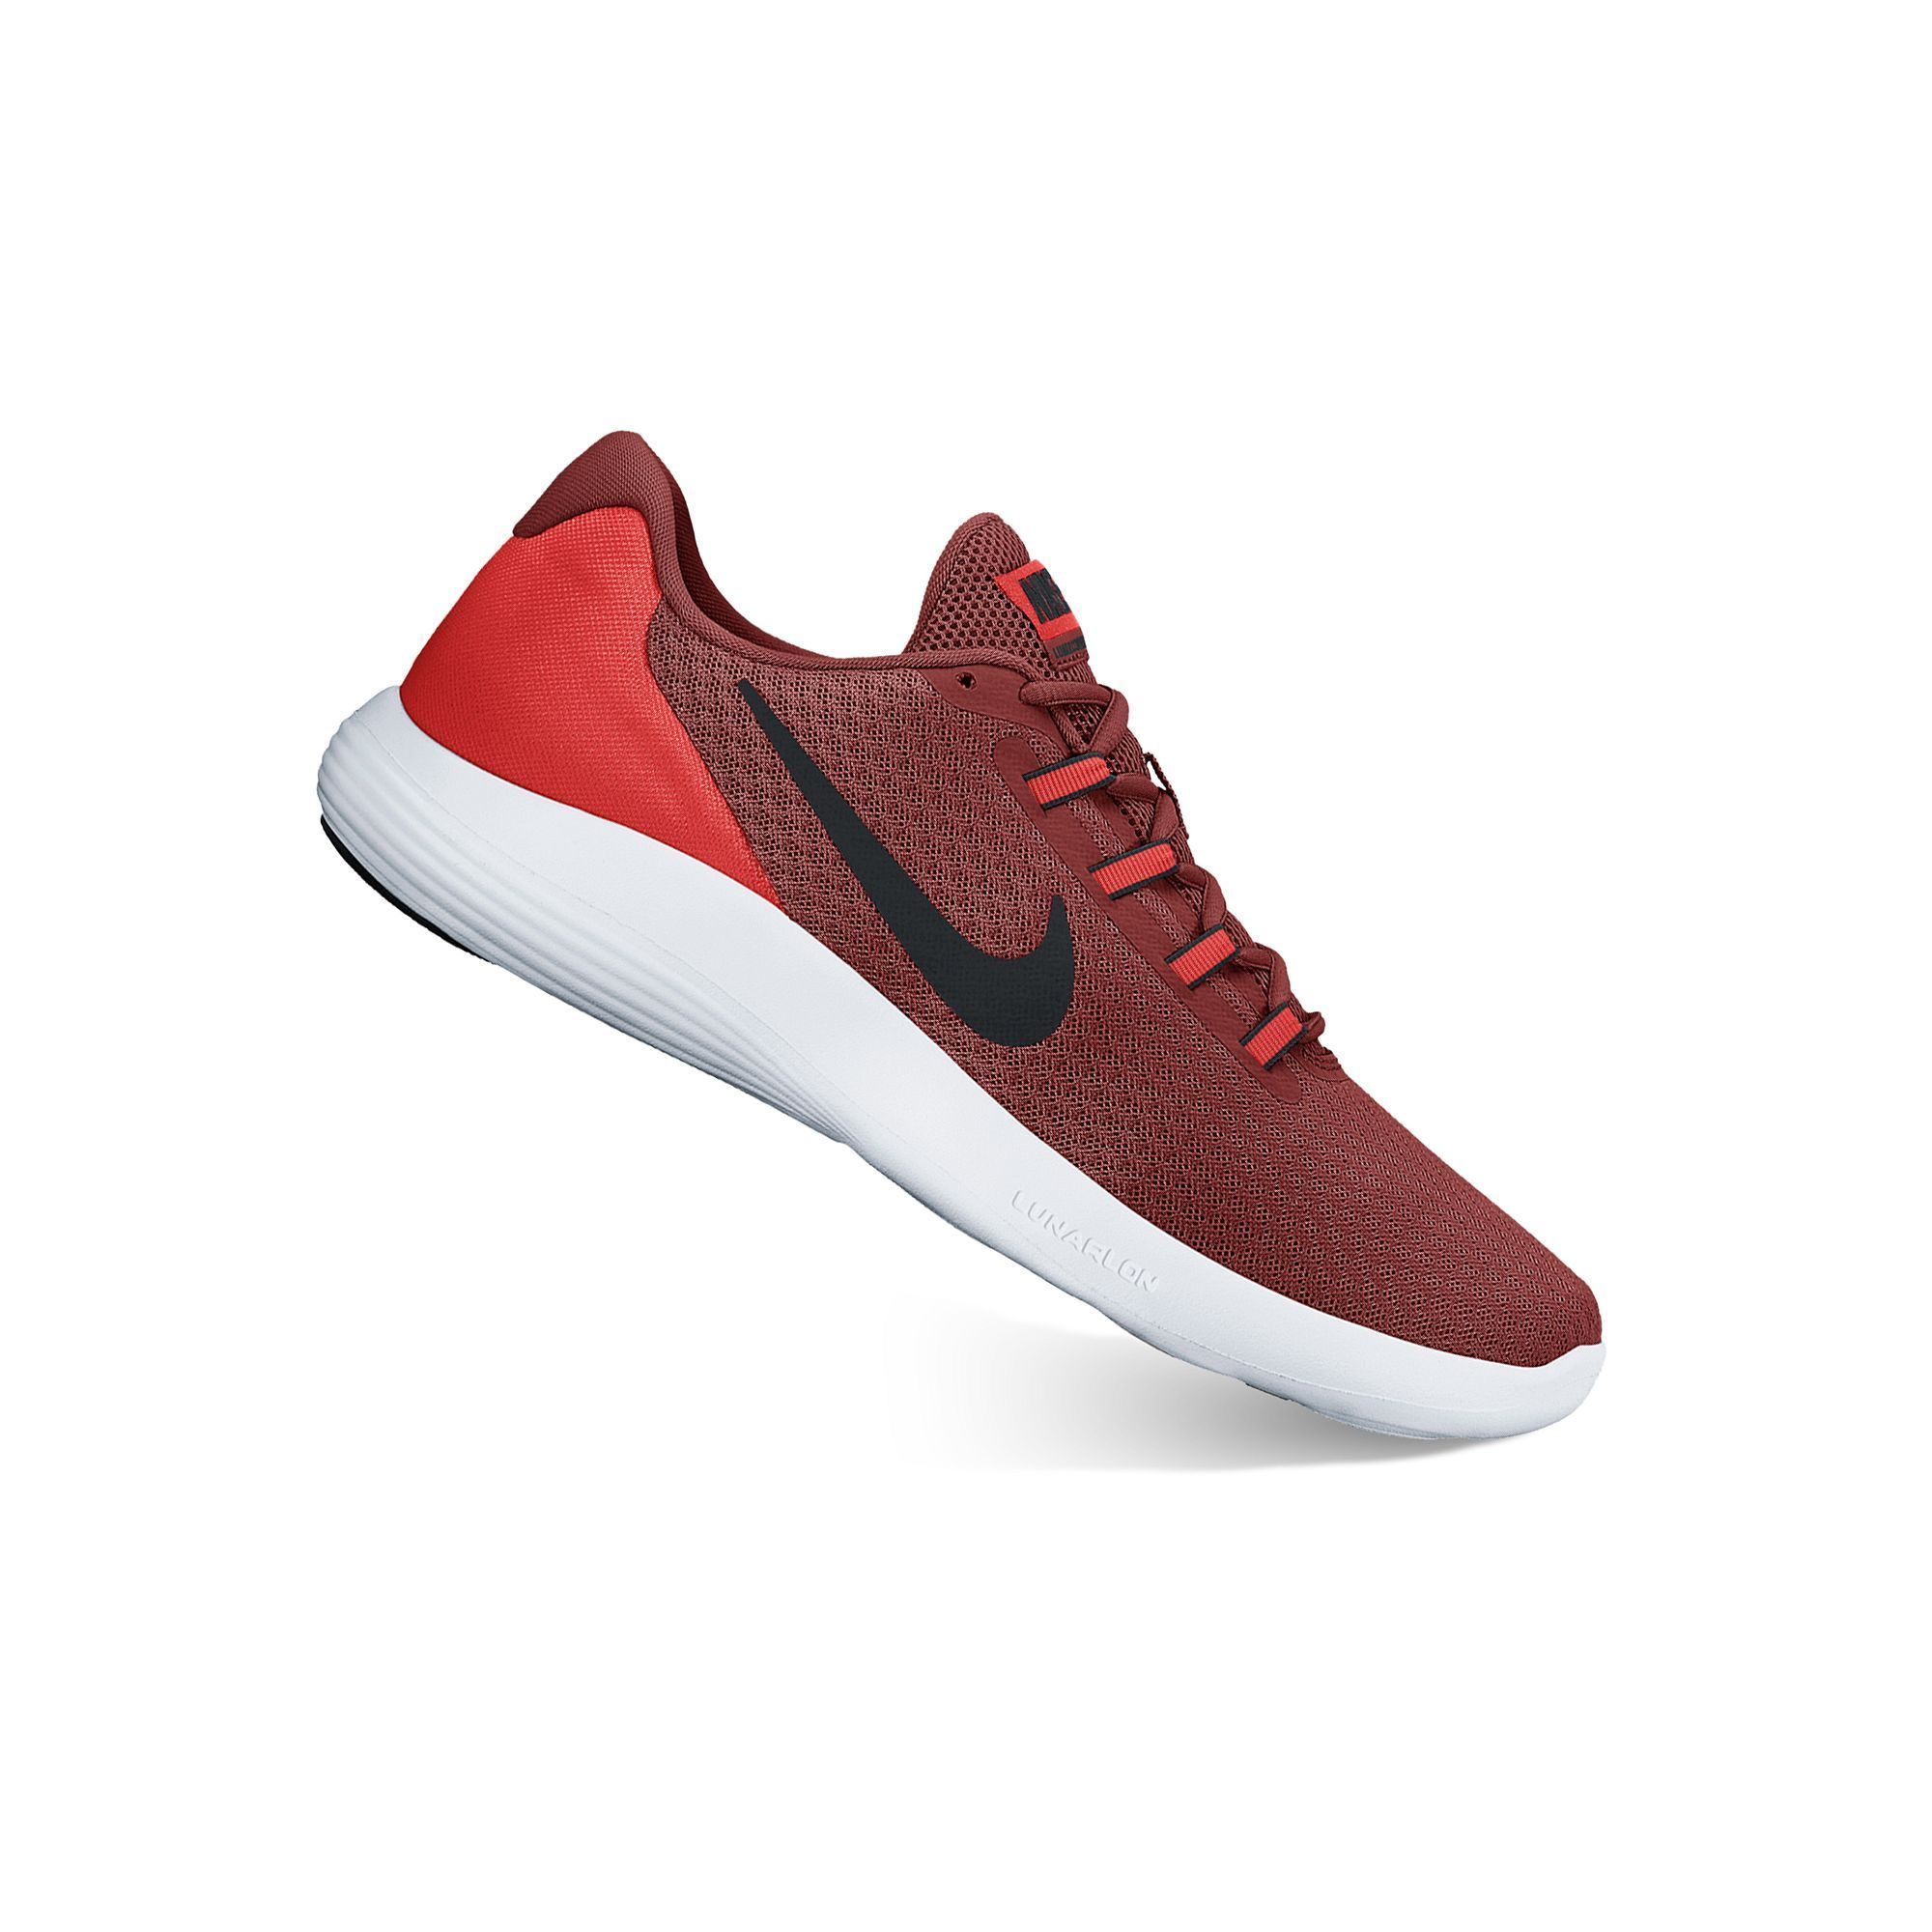 newest collection 523e8 fd45f Nike LunarConverge Men s Running Shoes, Size  10.5, Red